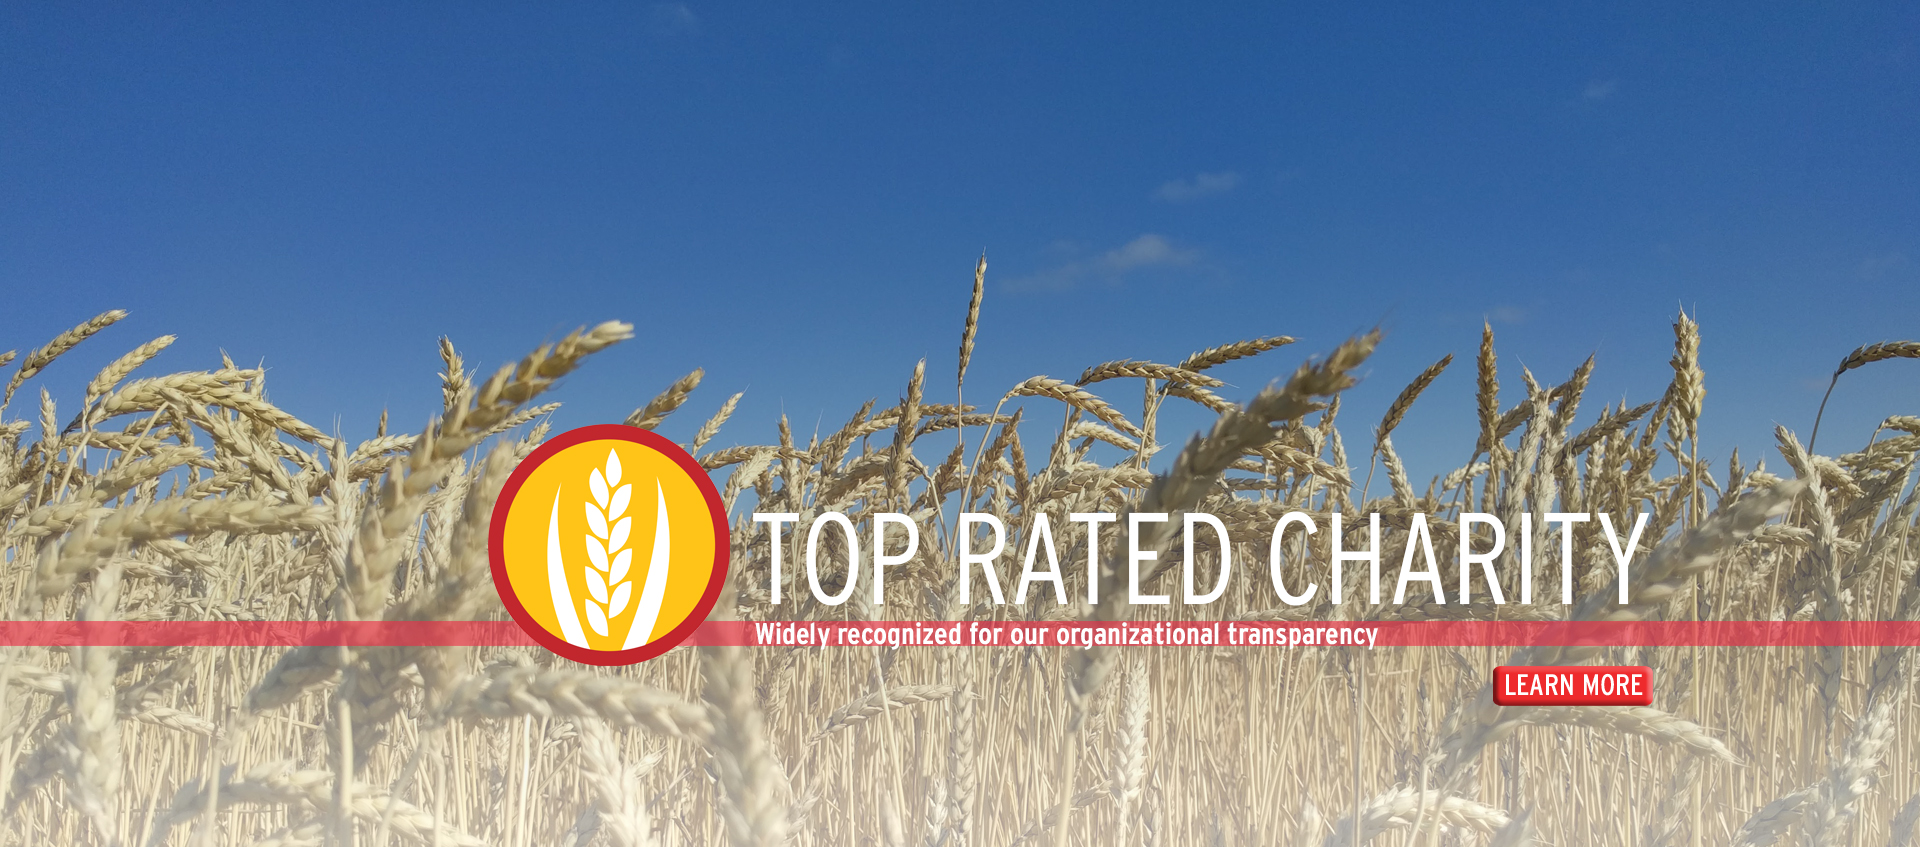 Top Rated Charity